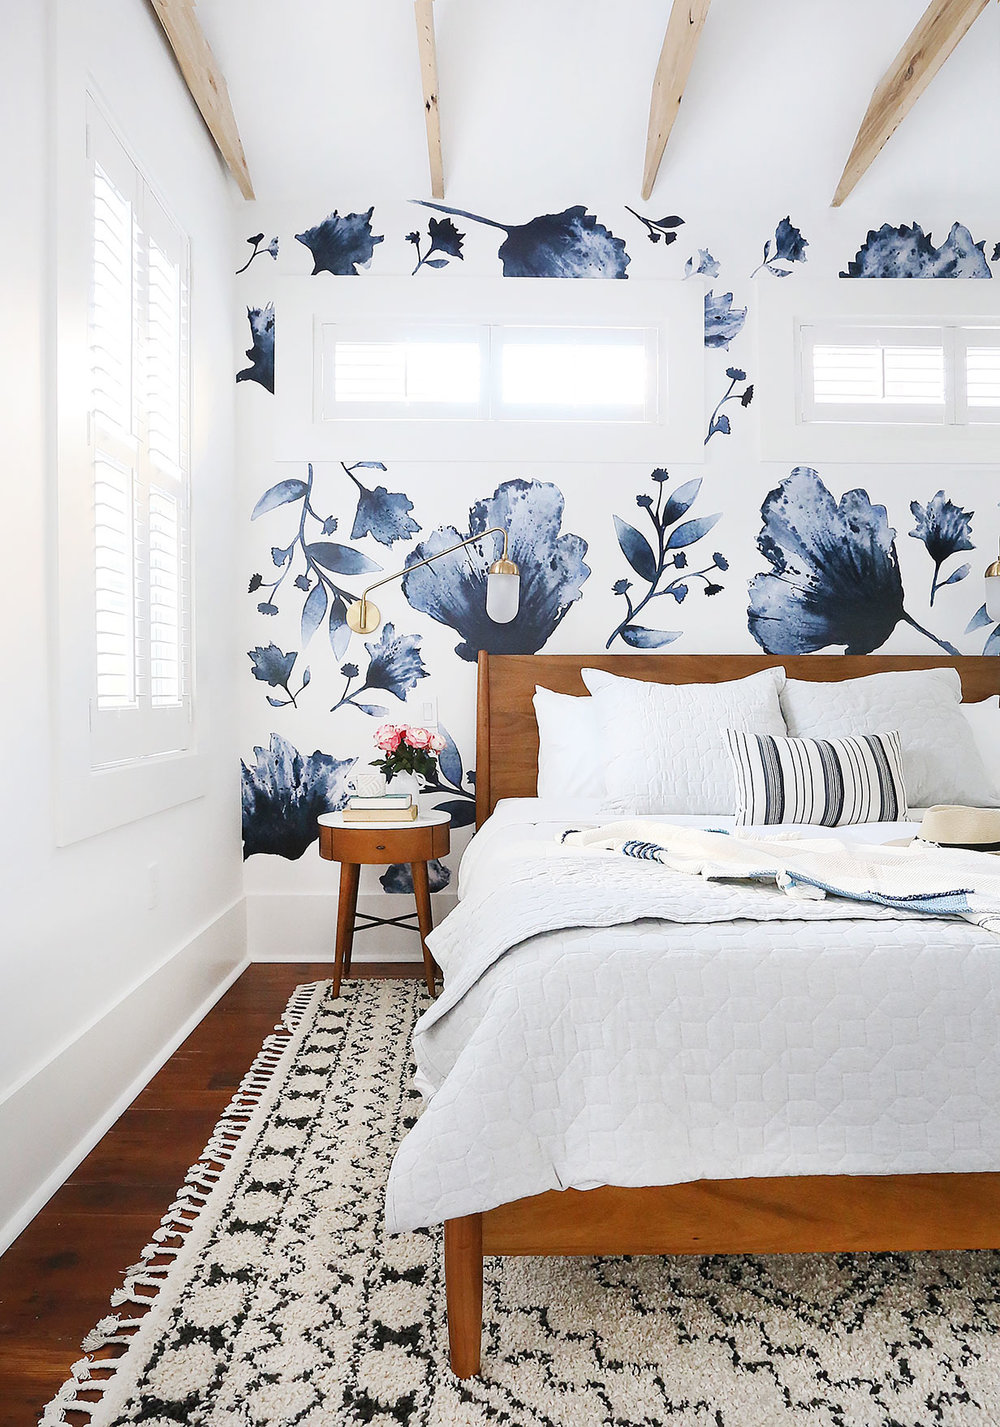 Rug   /   Bed   /   Floral Wall Decals   /   Coverlet   /   Nightstand   /   Sconce